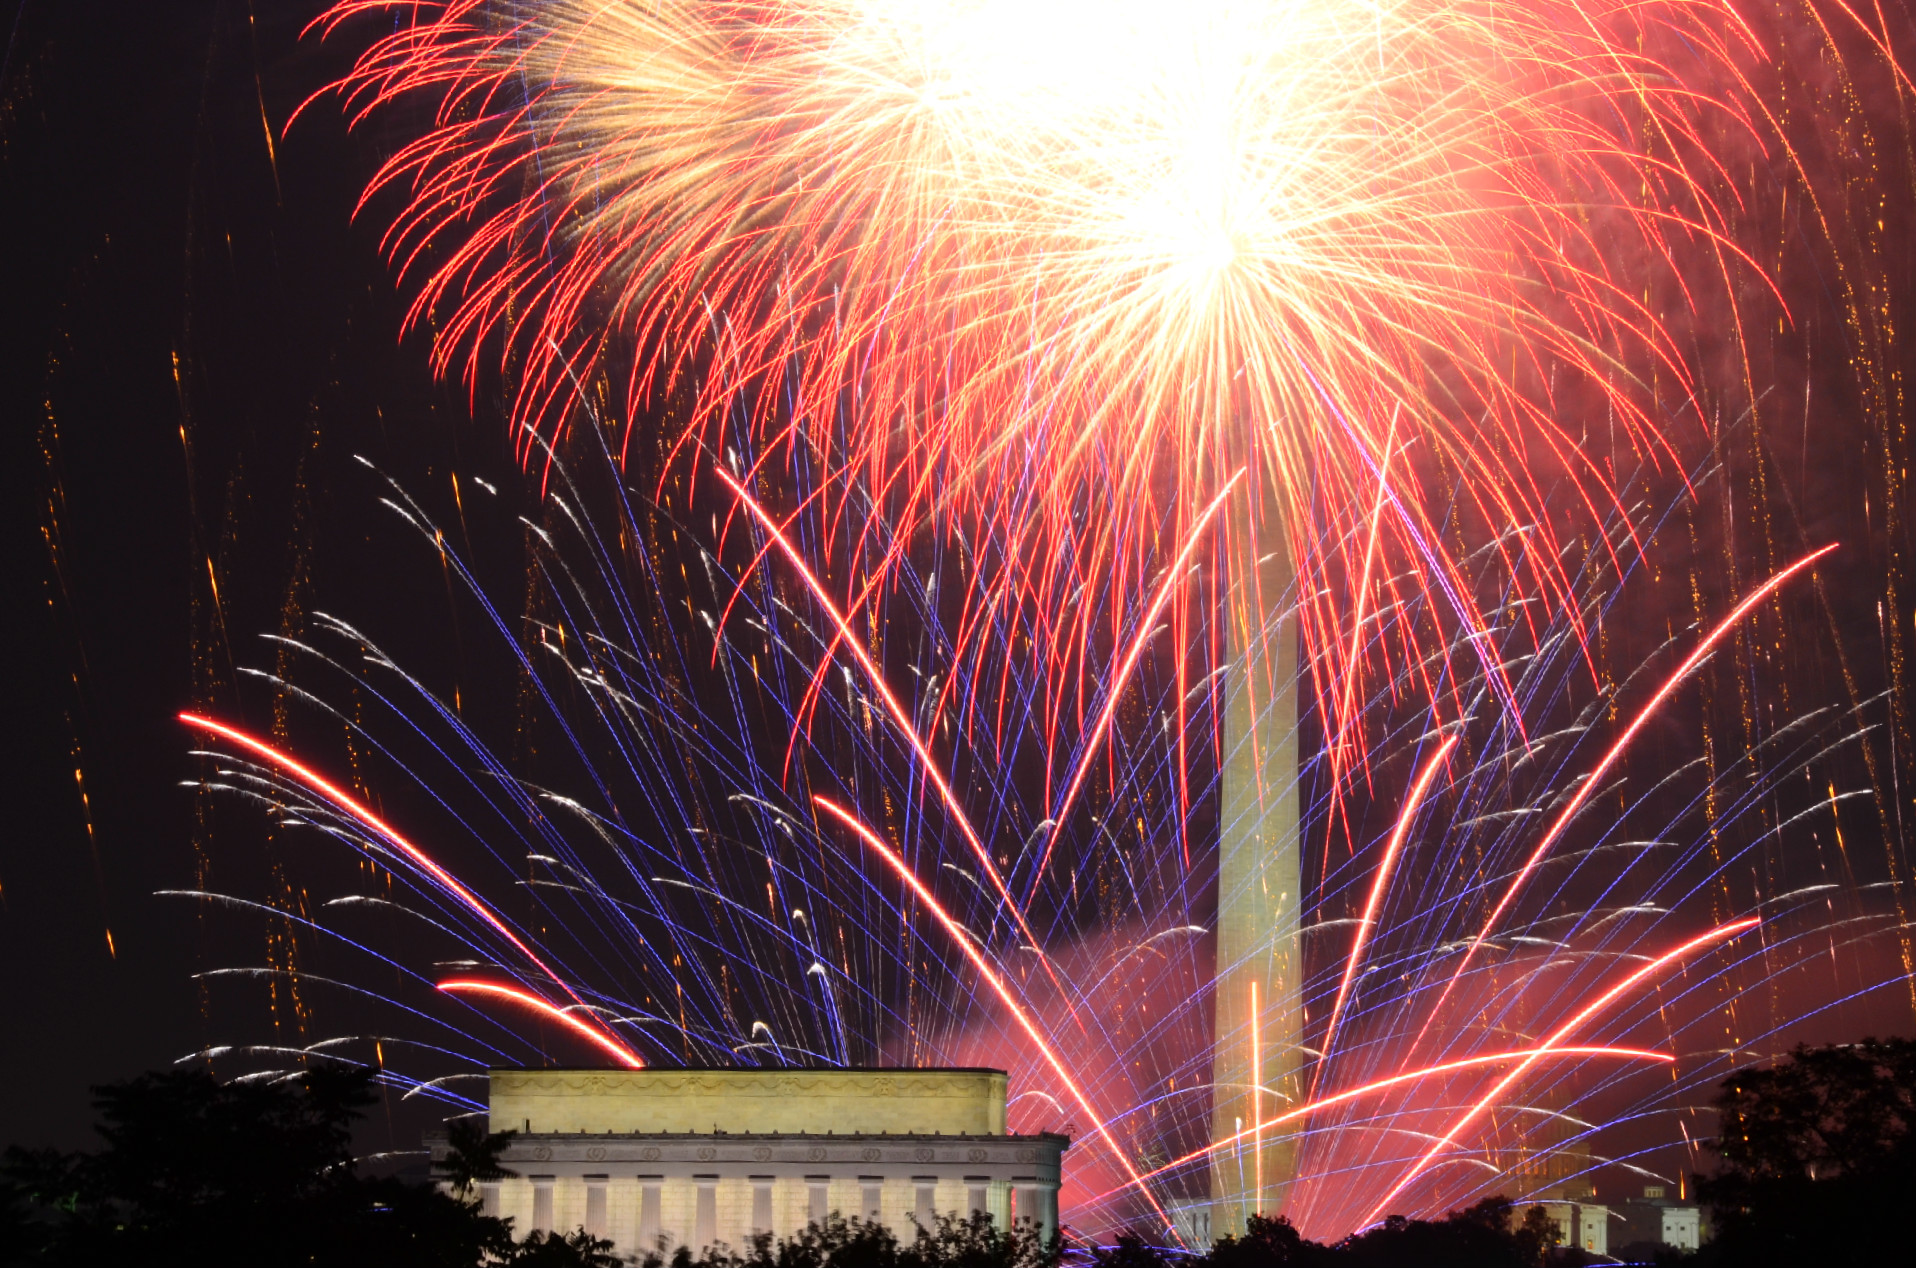 Fireworks in DC on the Fourth of July.